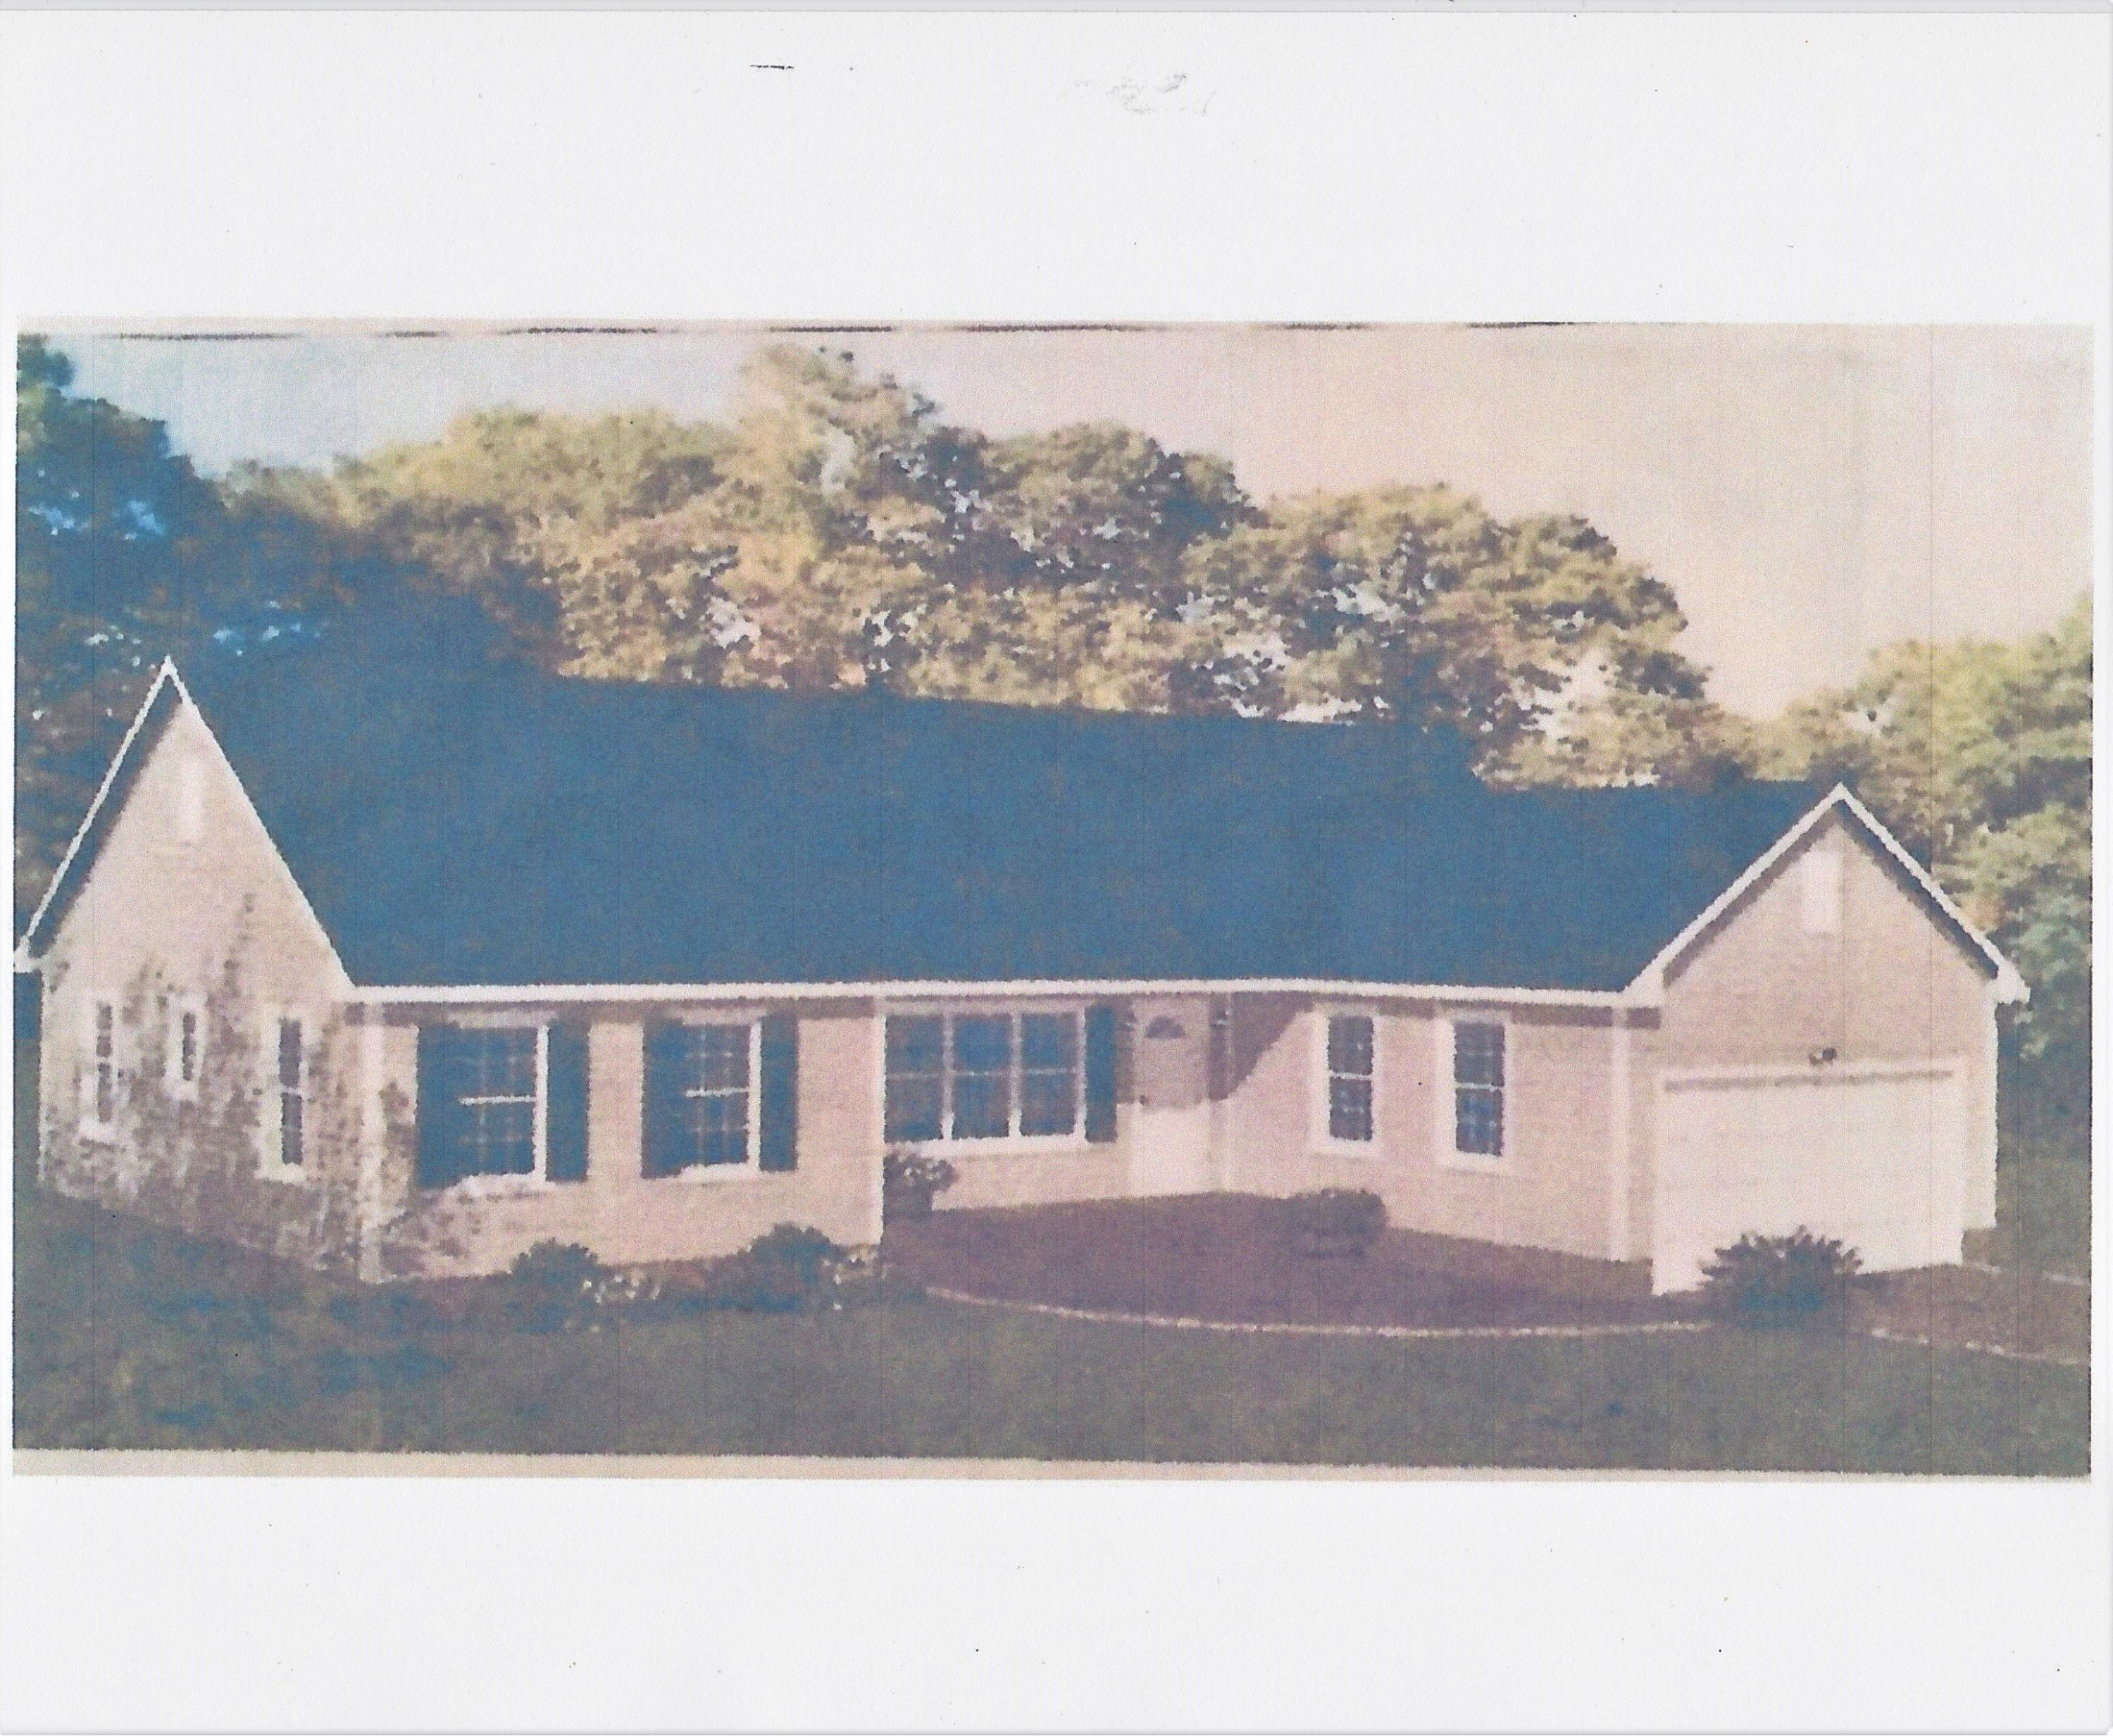 click to view more details 80 Colonial Way, Brewster, MA 02631